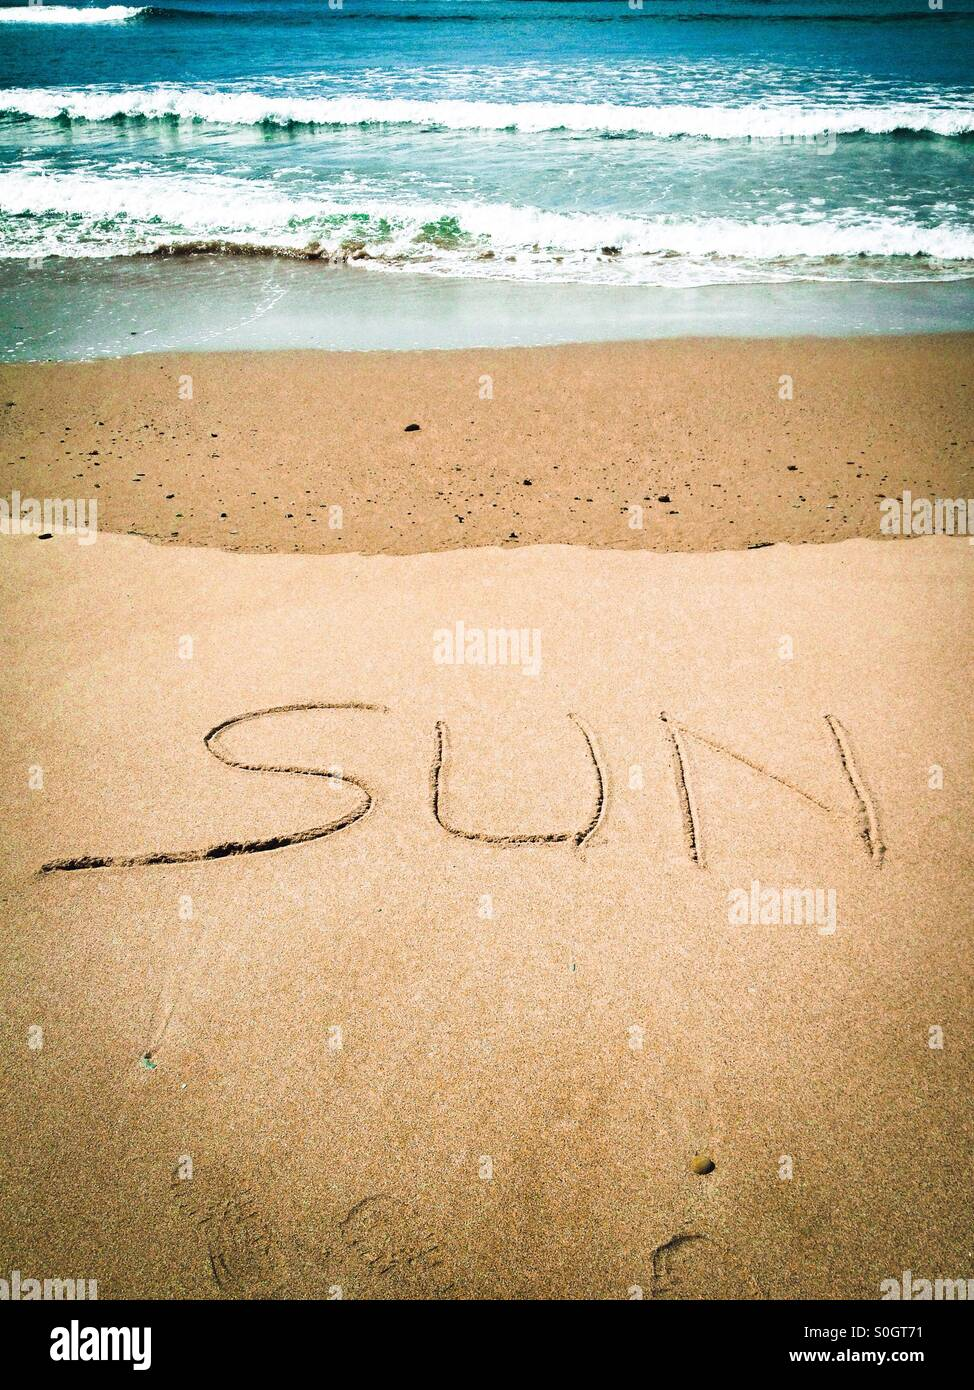 The word Sun written in the sand - Stock Image